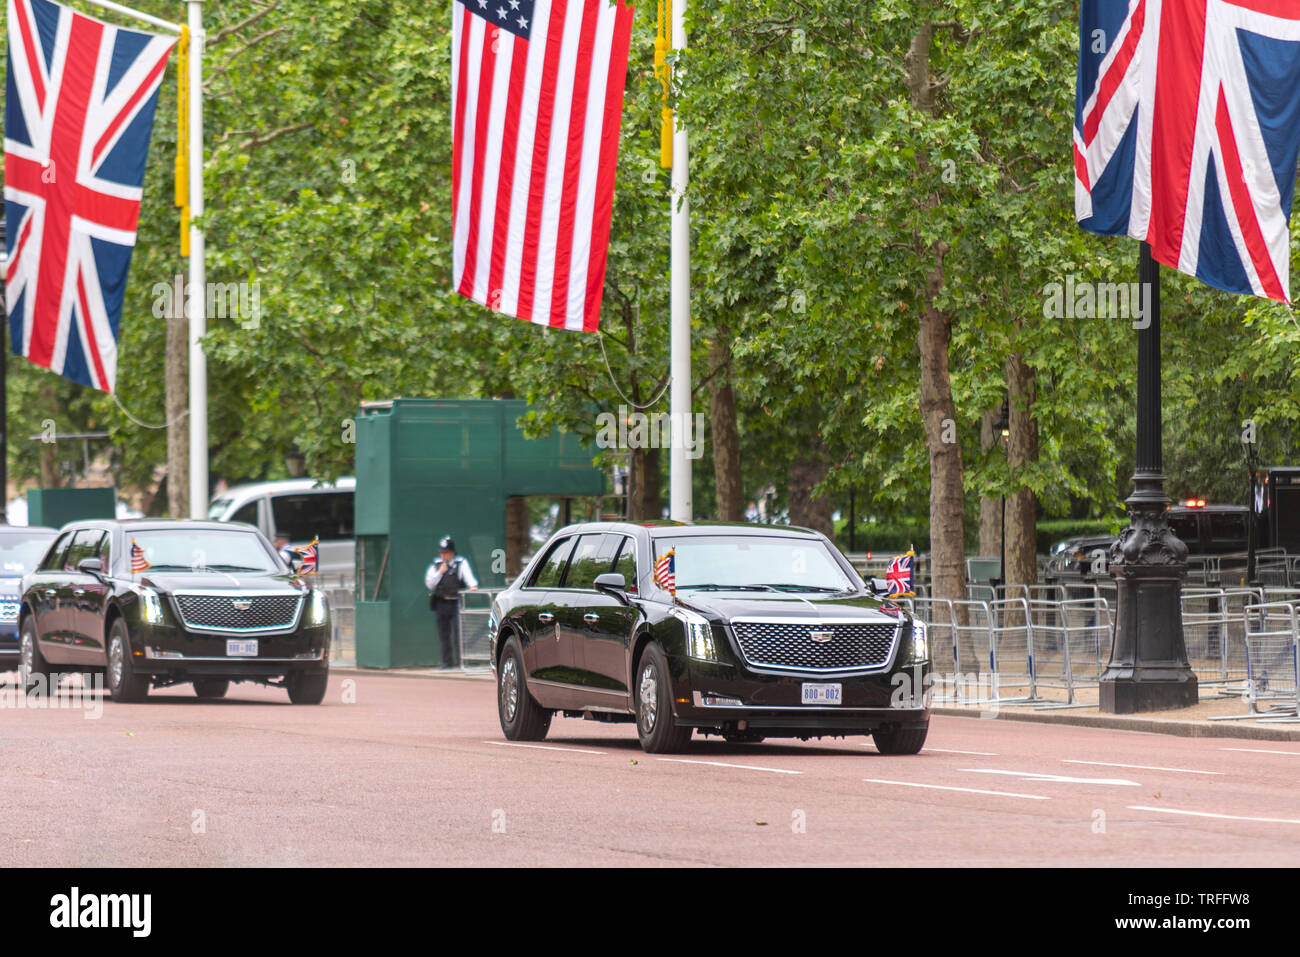 US President Donald Trump being driven along The Mall, London, UK in The Beast car with few people watching. No fans. Presidential motorcade - Stock Image